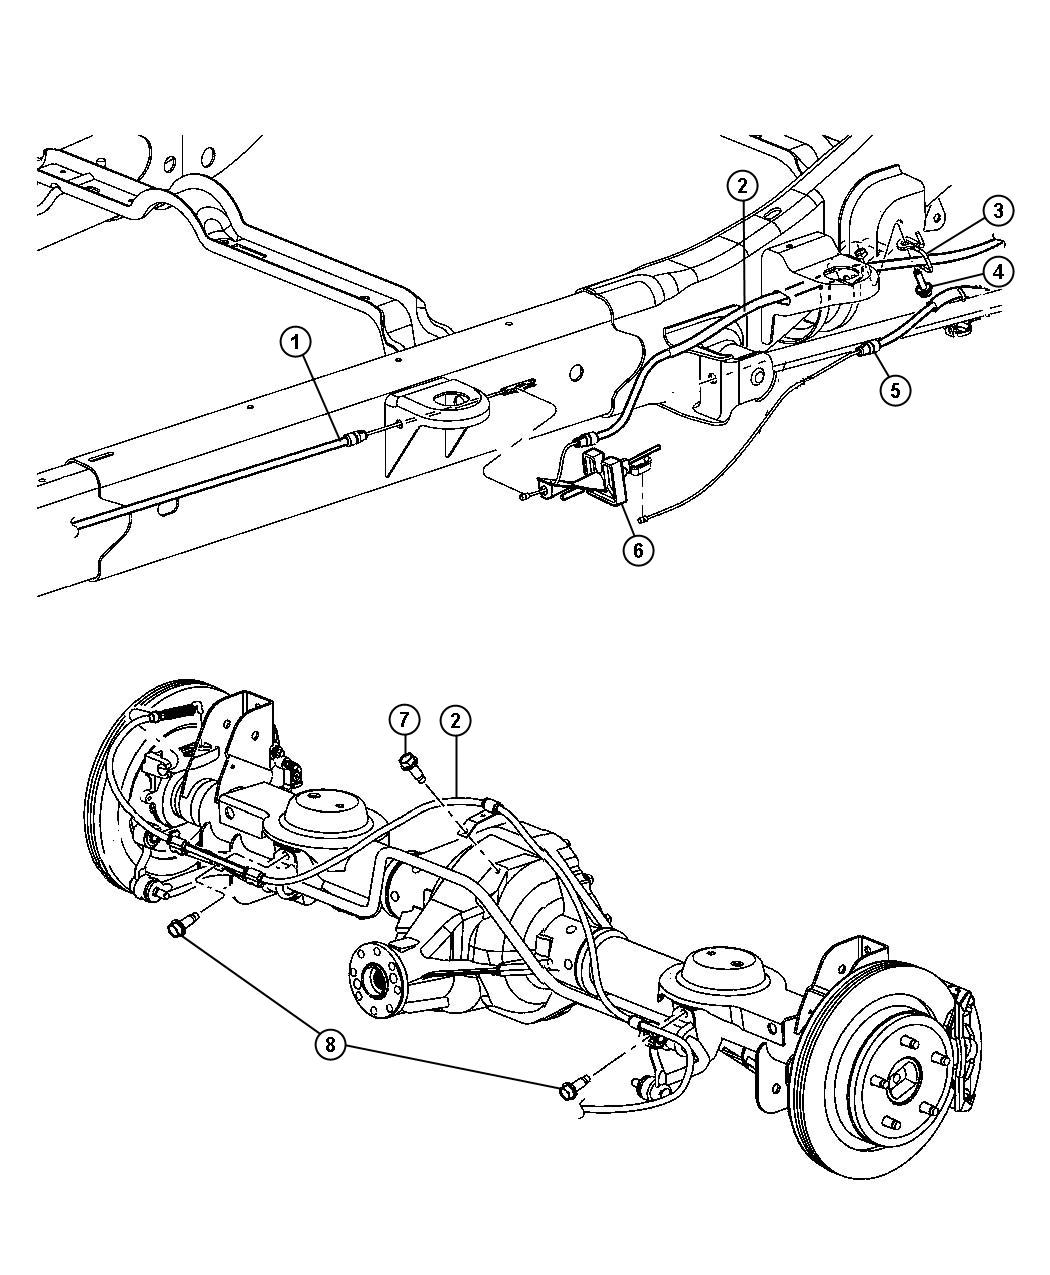 Service manual [2008 Chrysler Aspen Repair Rear Brakes